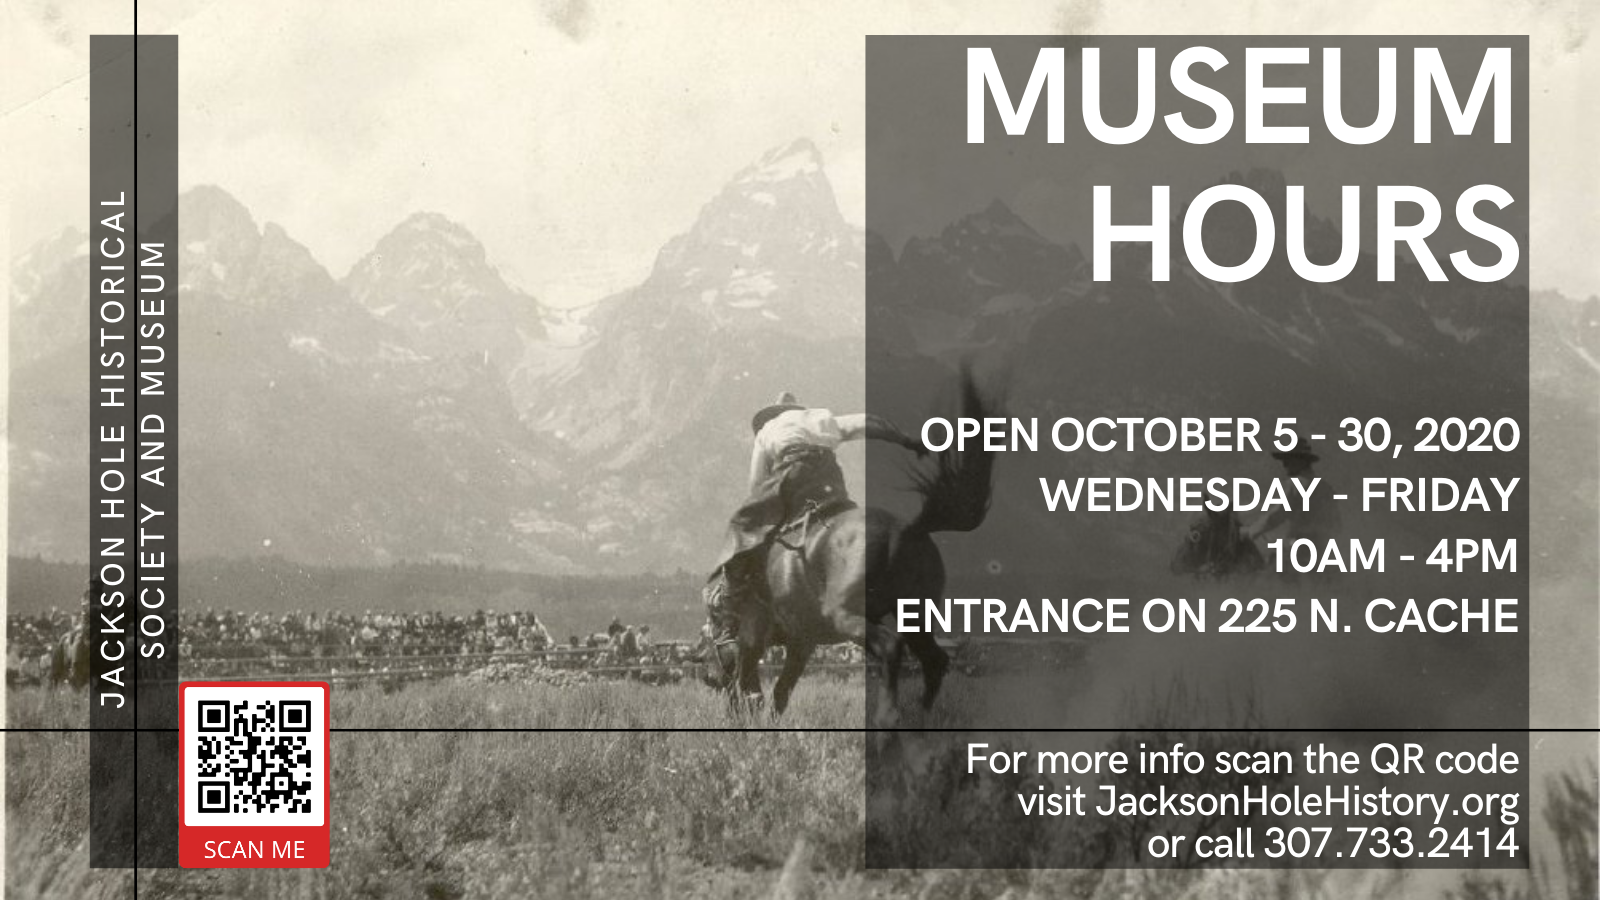 Jackson Hole Historical Society and Museum Open Hours October